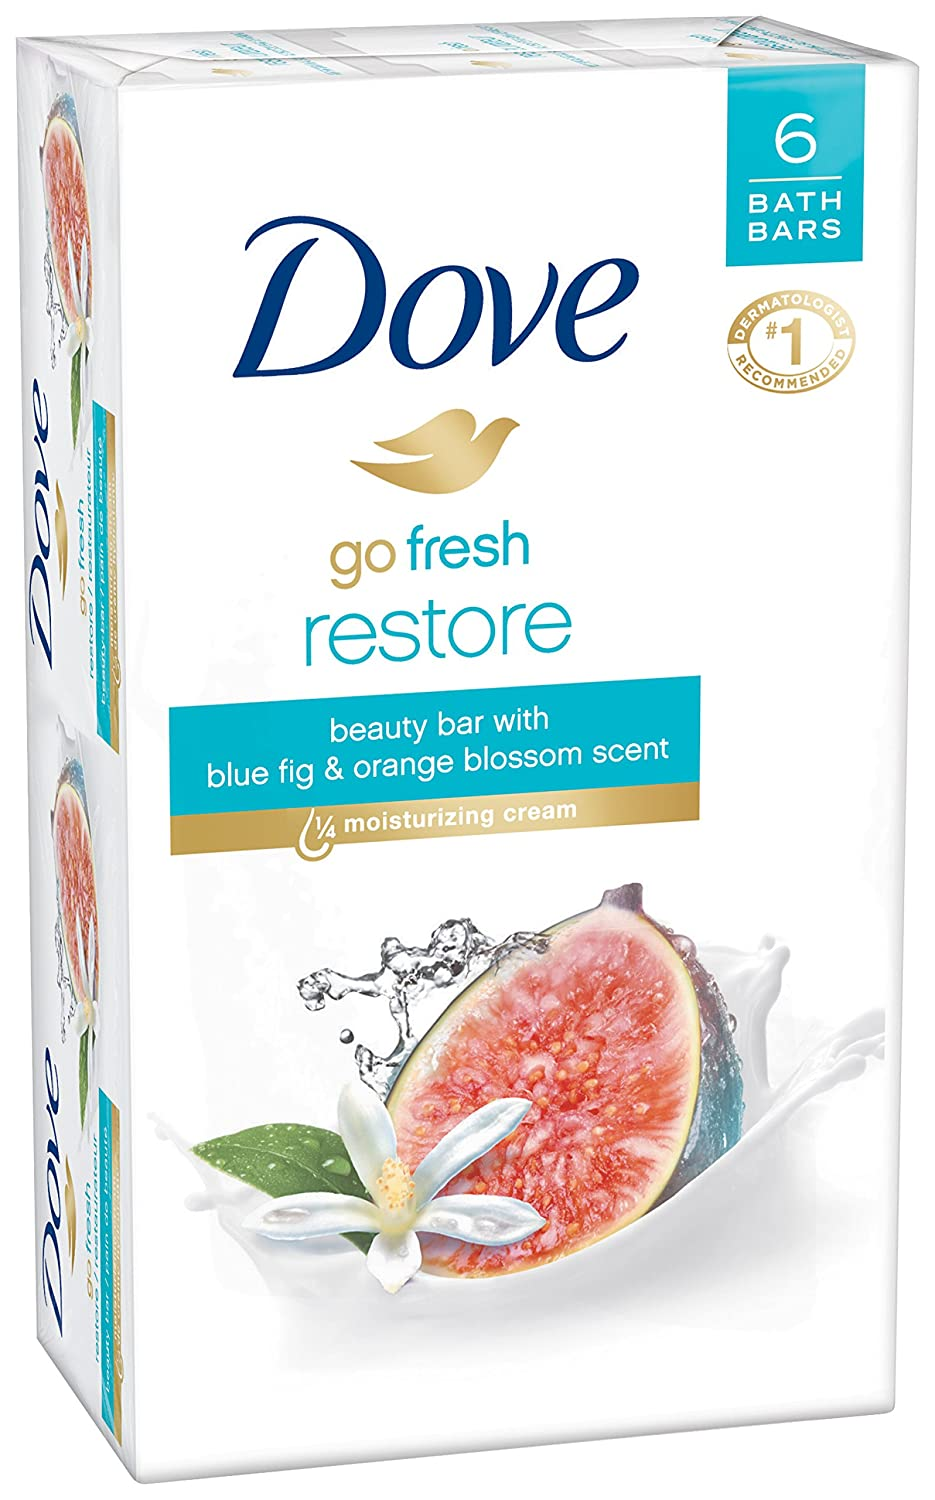 Dove go fresh Beauty Bar, Restore 4 oz, 6 Bar